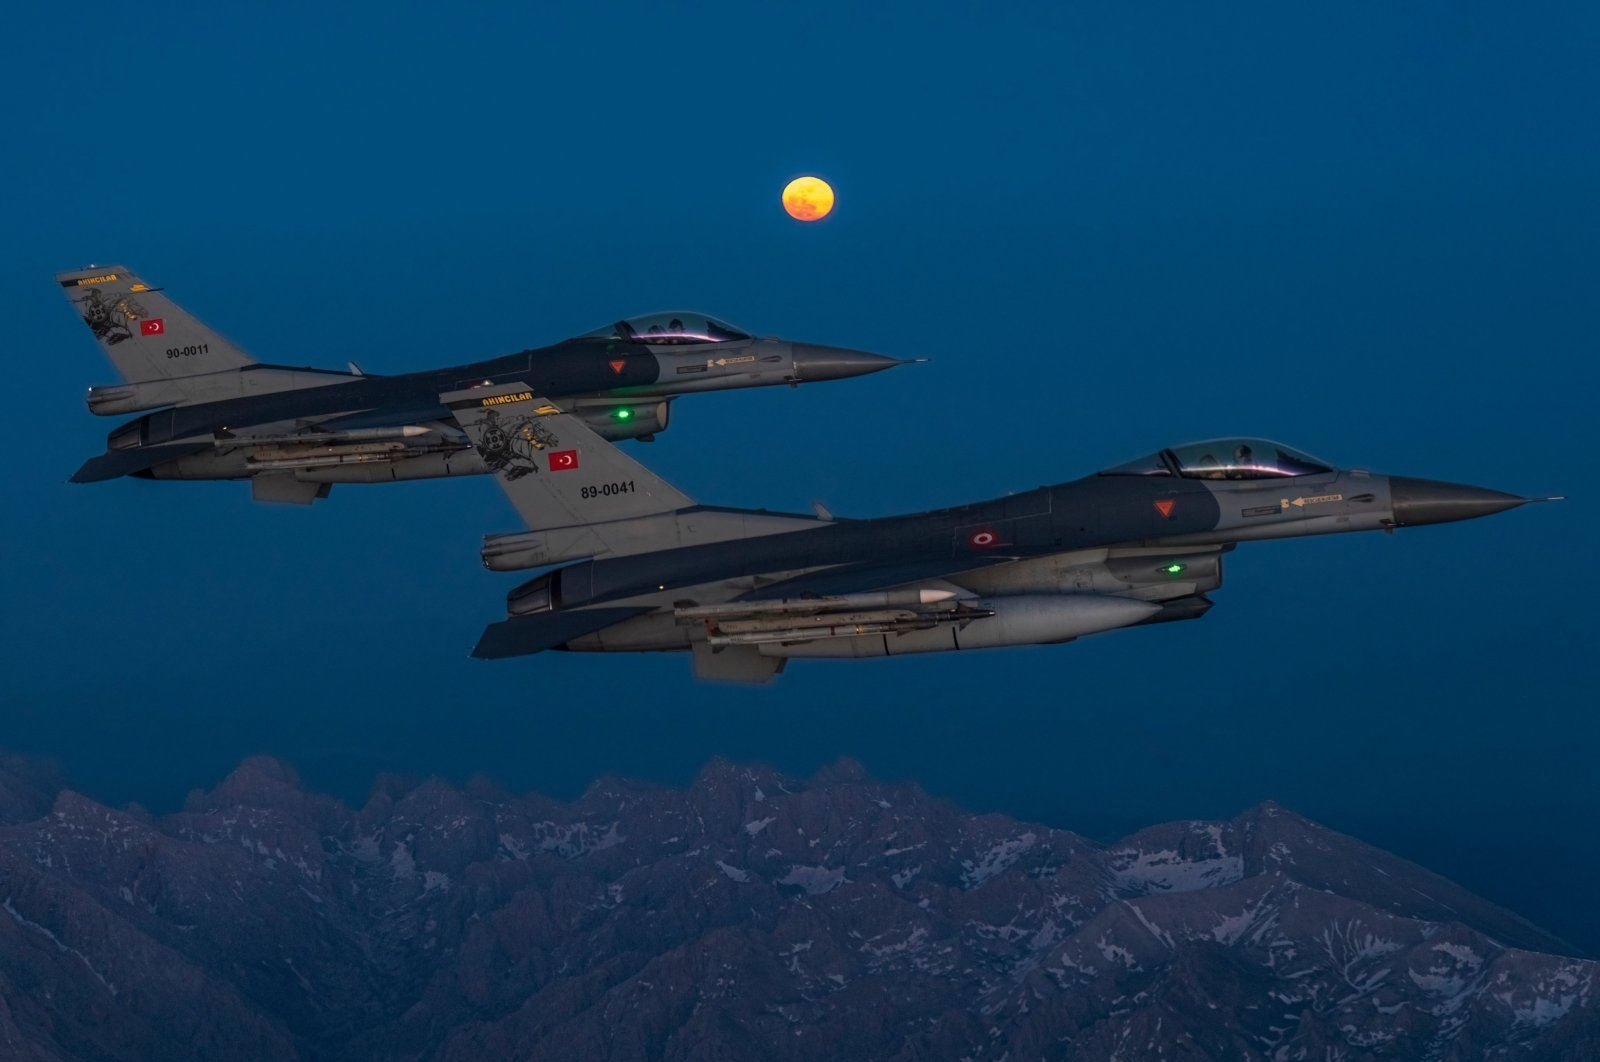 """Turkish F-16 fighter jets fly amid the """"super moon"""" at an unidentified location in Turkey, May 28, 2021. (Defense Ministry handout)"""